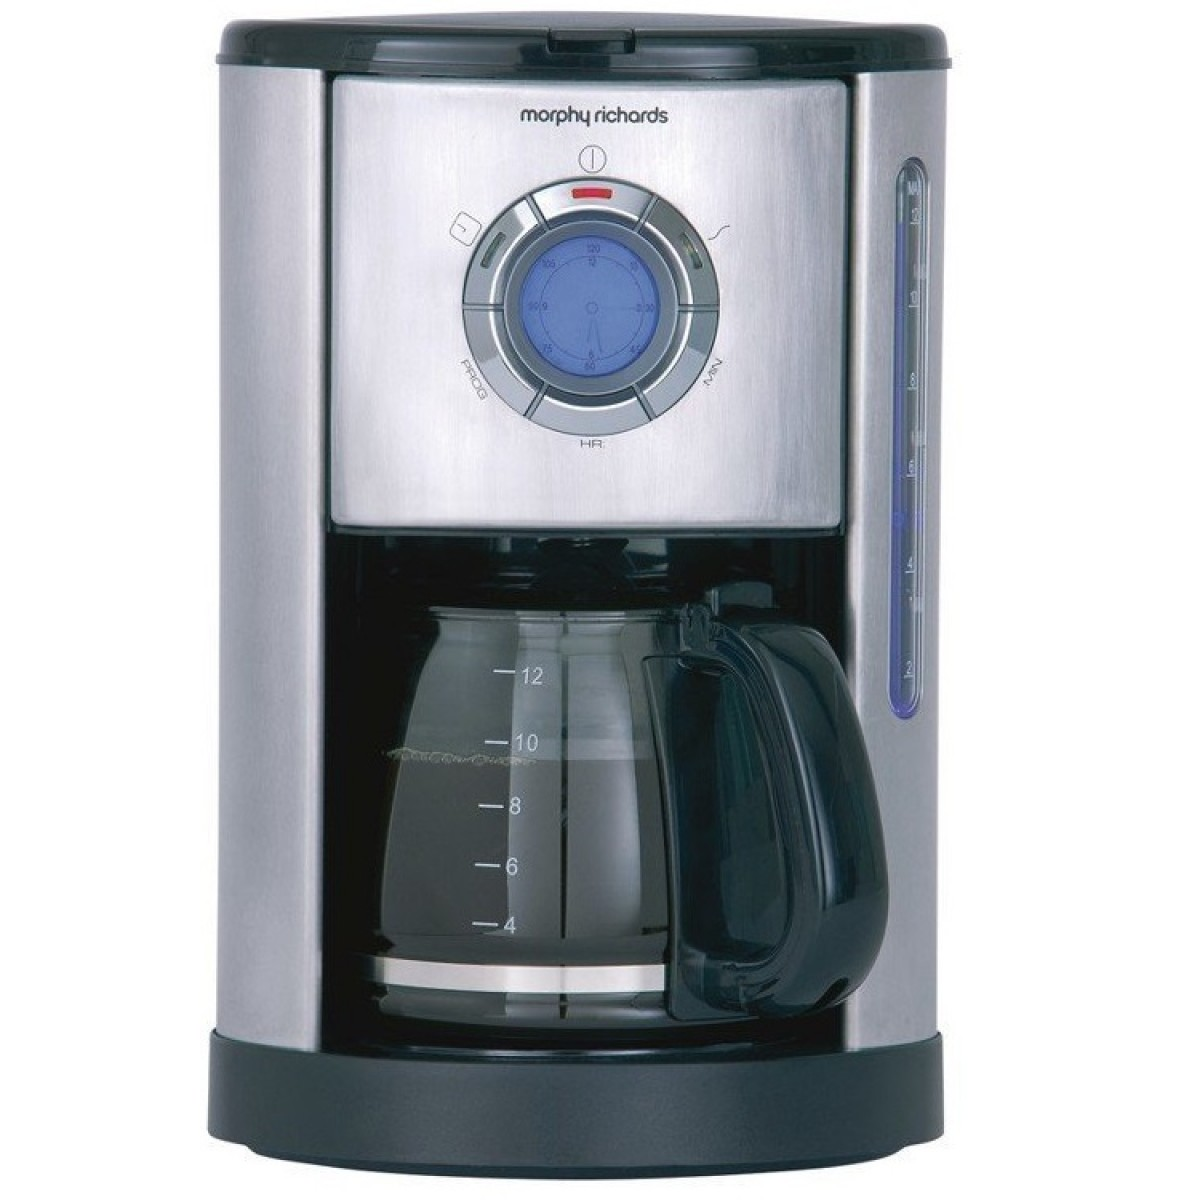 Morphy Richards Coffee Maker 47094 Instructions : 47078 Morphy Richards Filter Coffee Maker